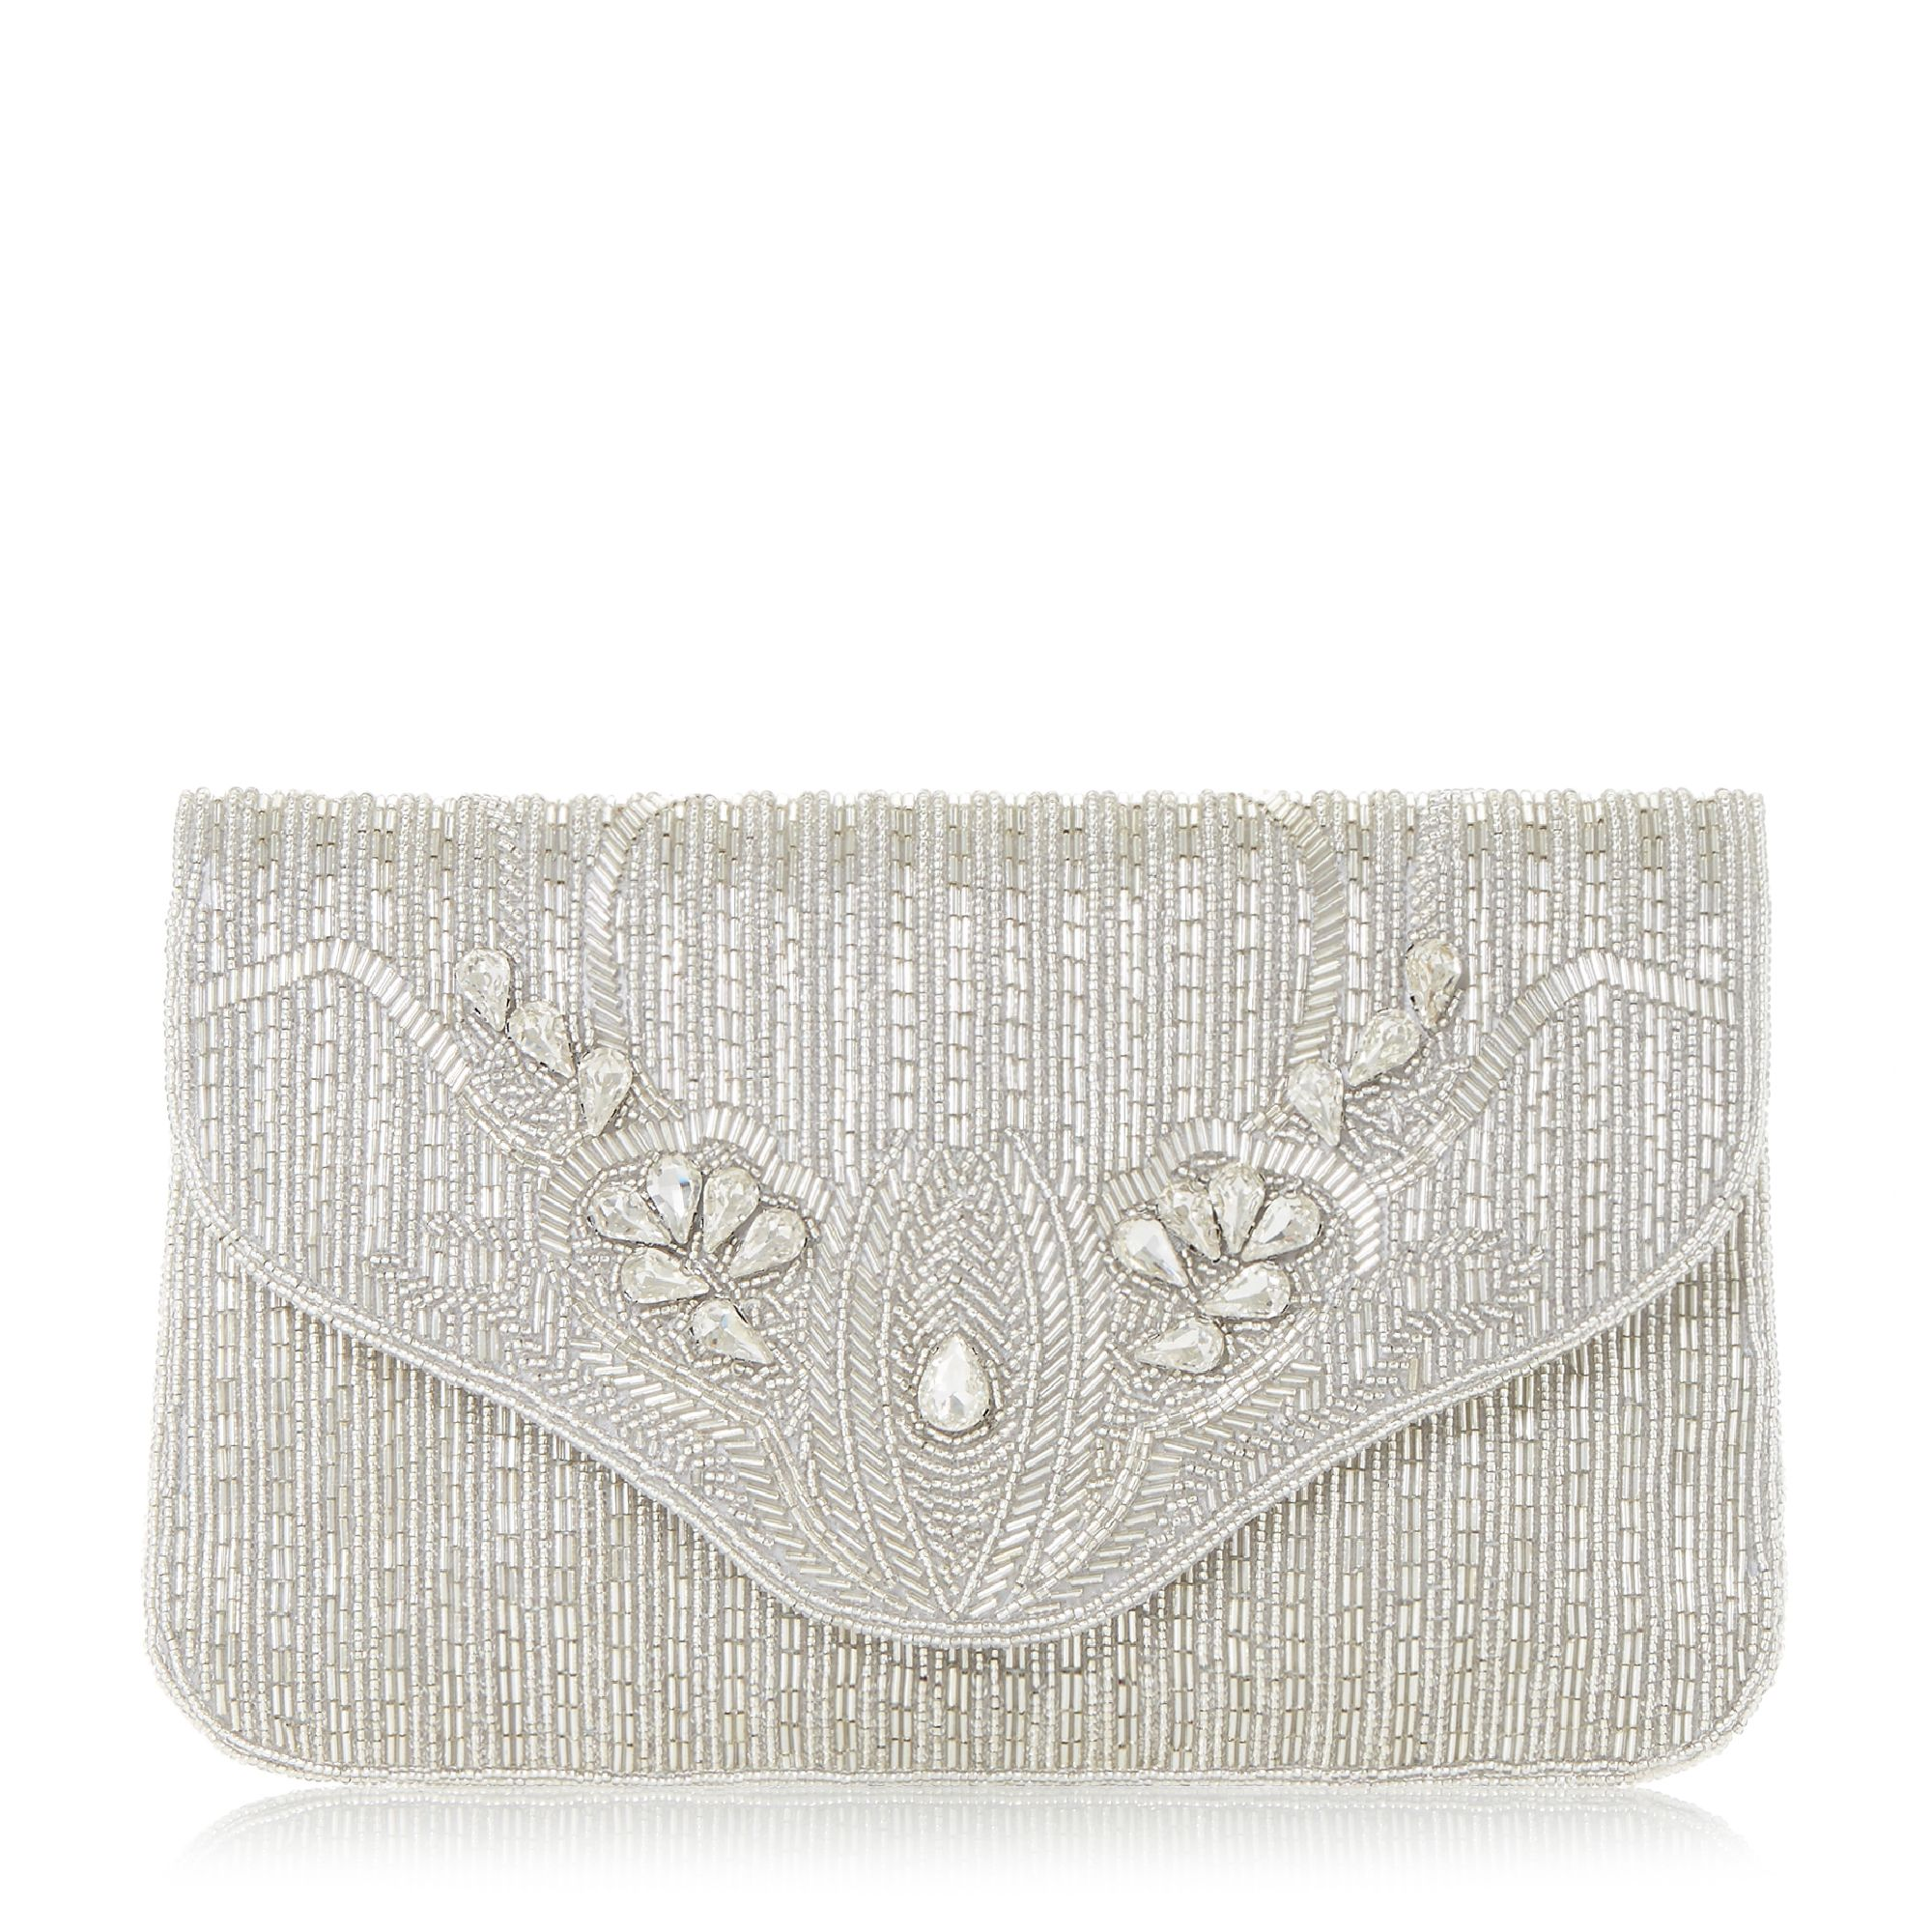 Silver Wedding / Evening Women's Clutch. Gorgeous Rhinestone Flower Rhinestone Clutch. You can even buy the cheap clutches online and you can avail them easily. You can use them anytime when you go out and especially if you carry them during the parties, then they add a sense of vigor to your personality. These clutch bags for women are.